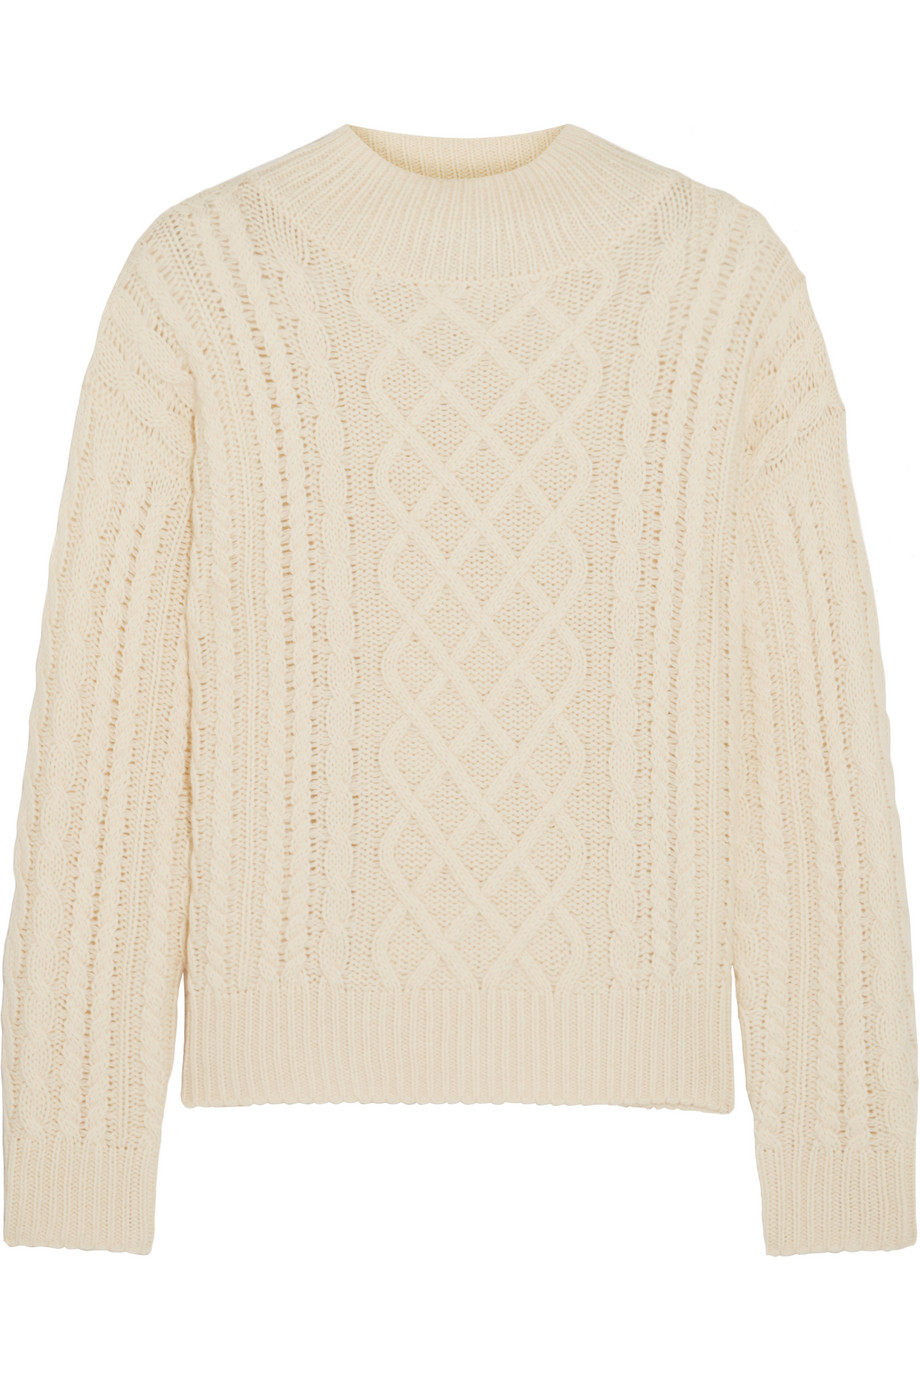 Frame Denim Cable-Knit Wool-Blend Sweater, Cream, Women's, Size: L